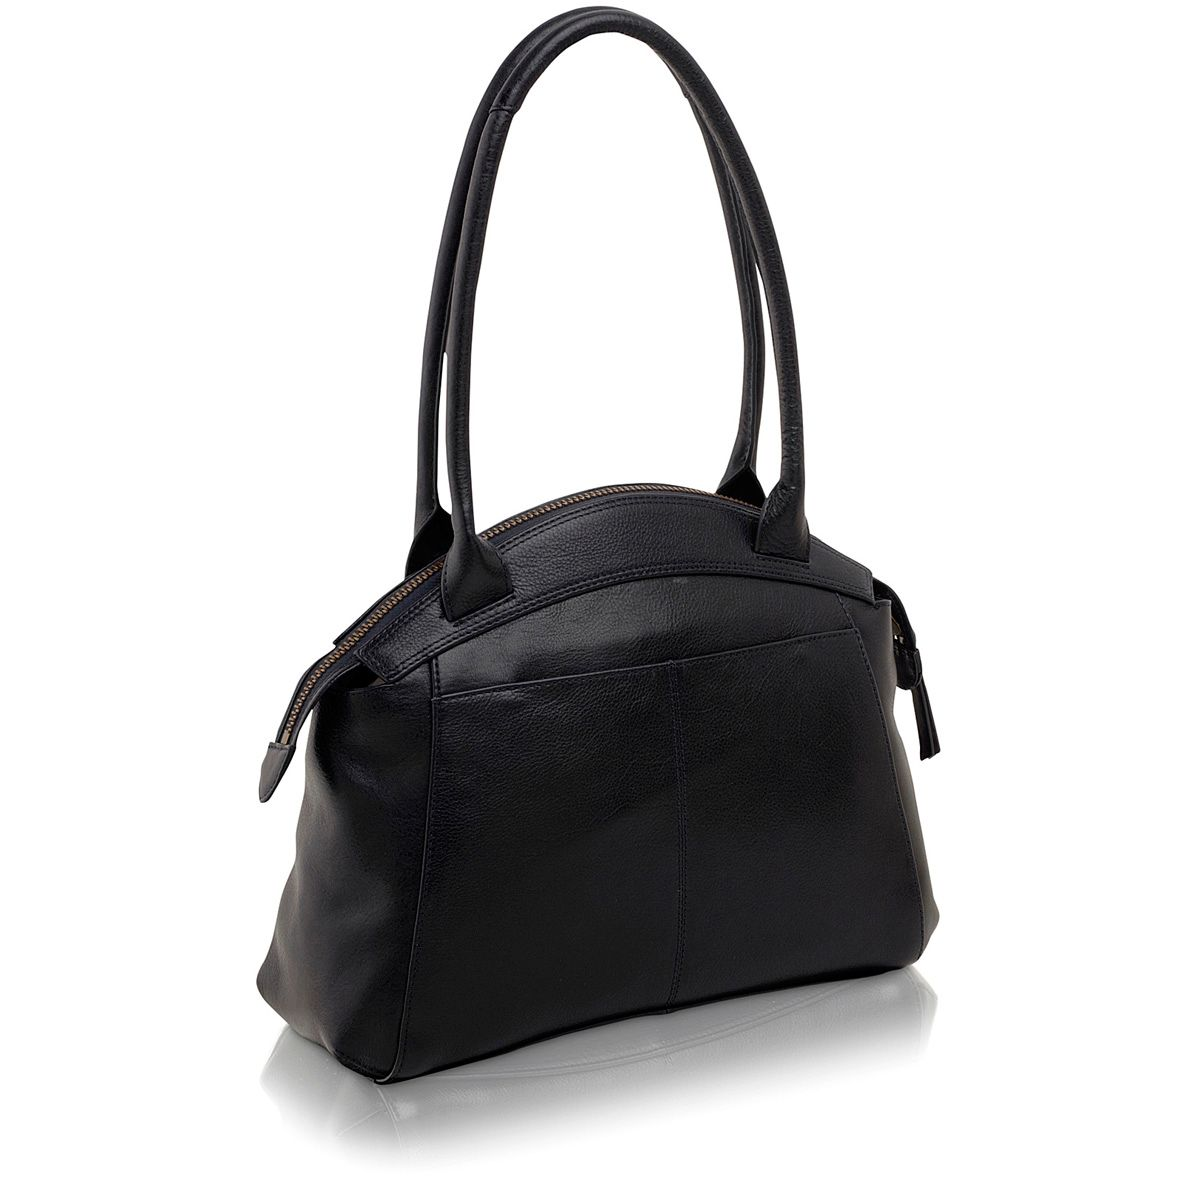 Clayton navy medium leather tote bag